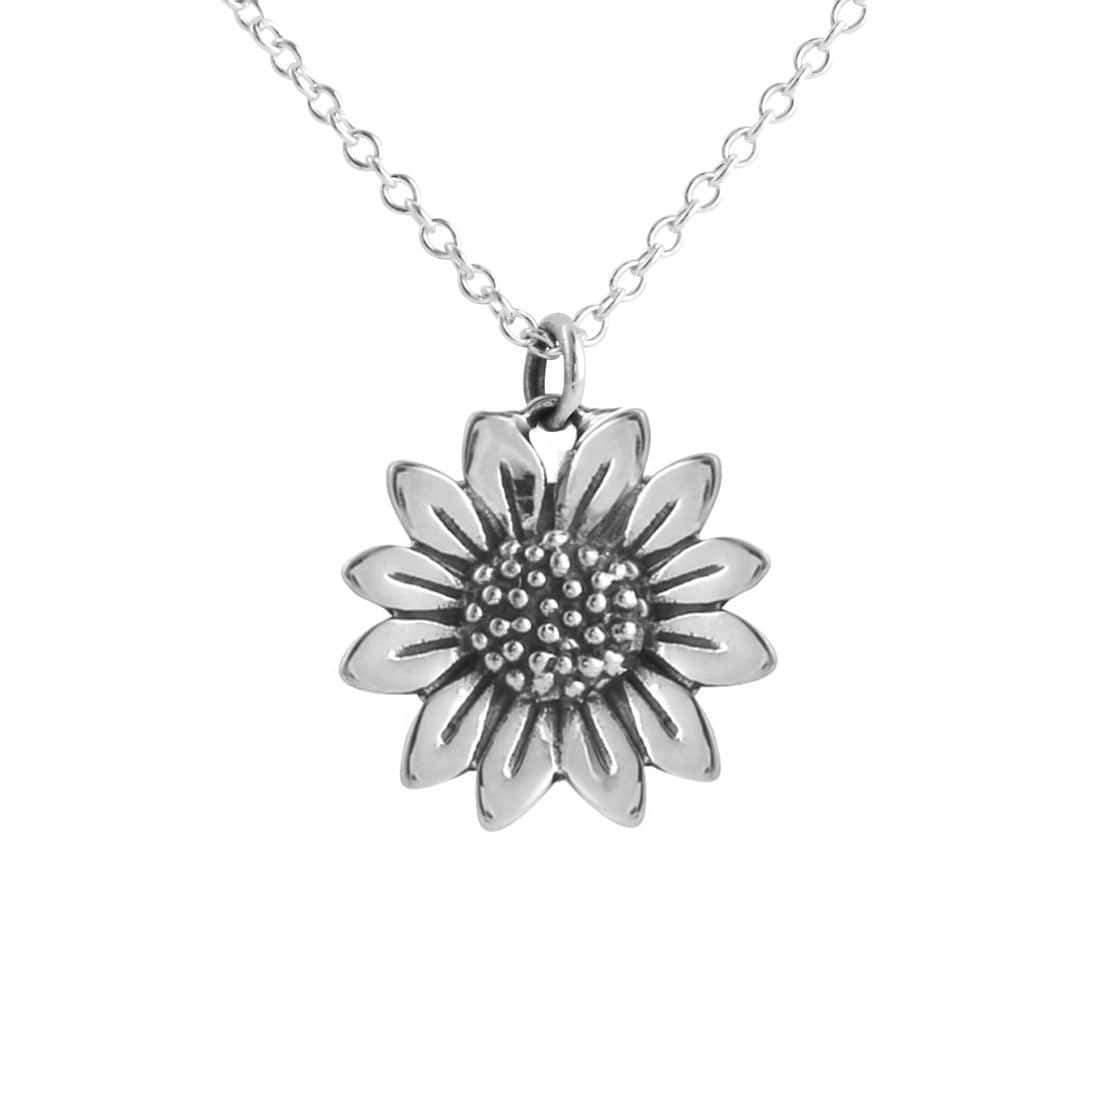 Midsummer Star Necklaces Blossoming Sunflower Necklace